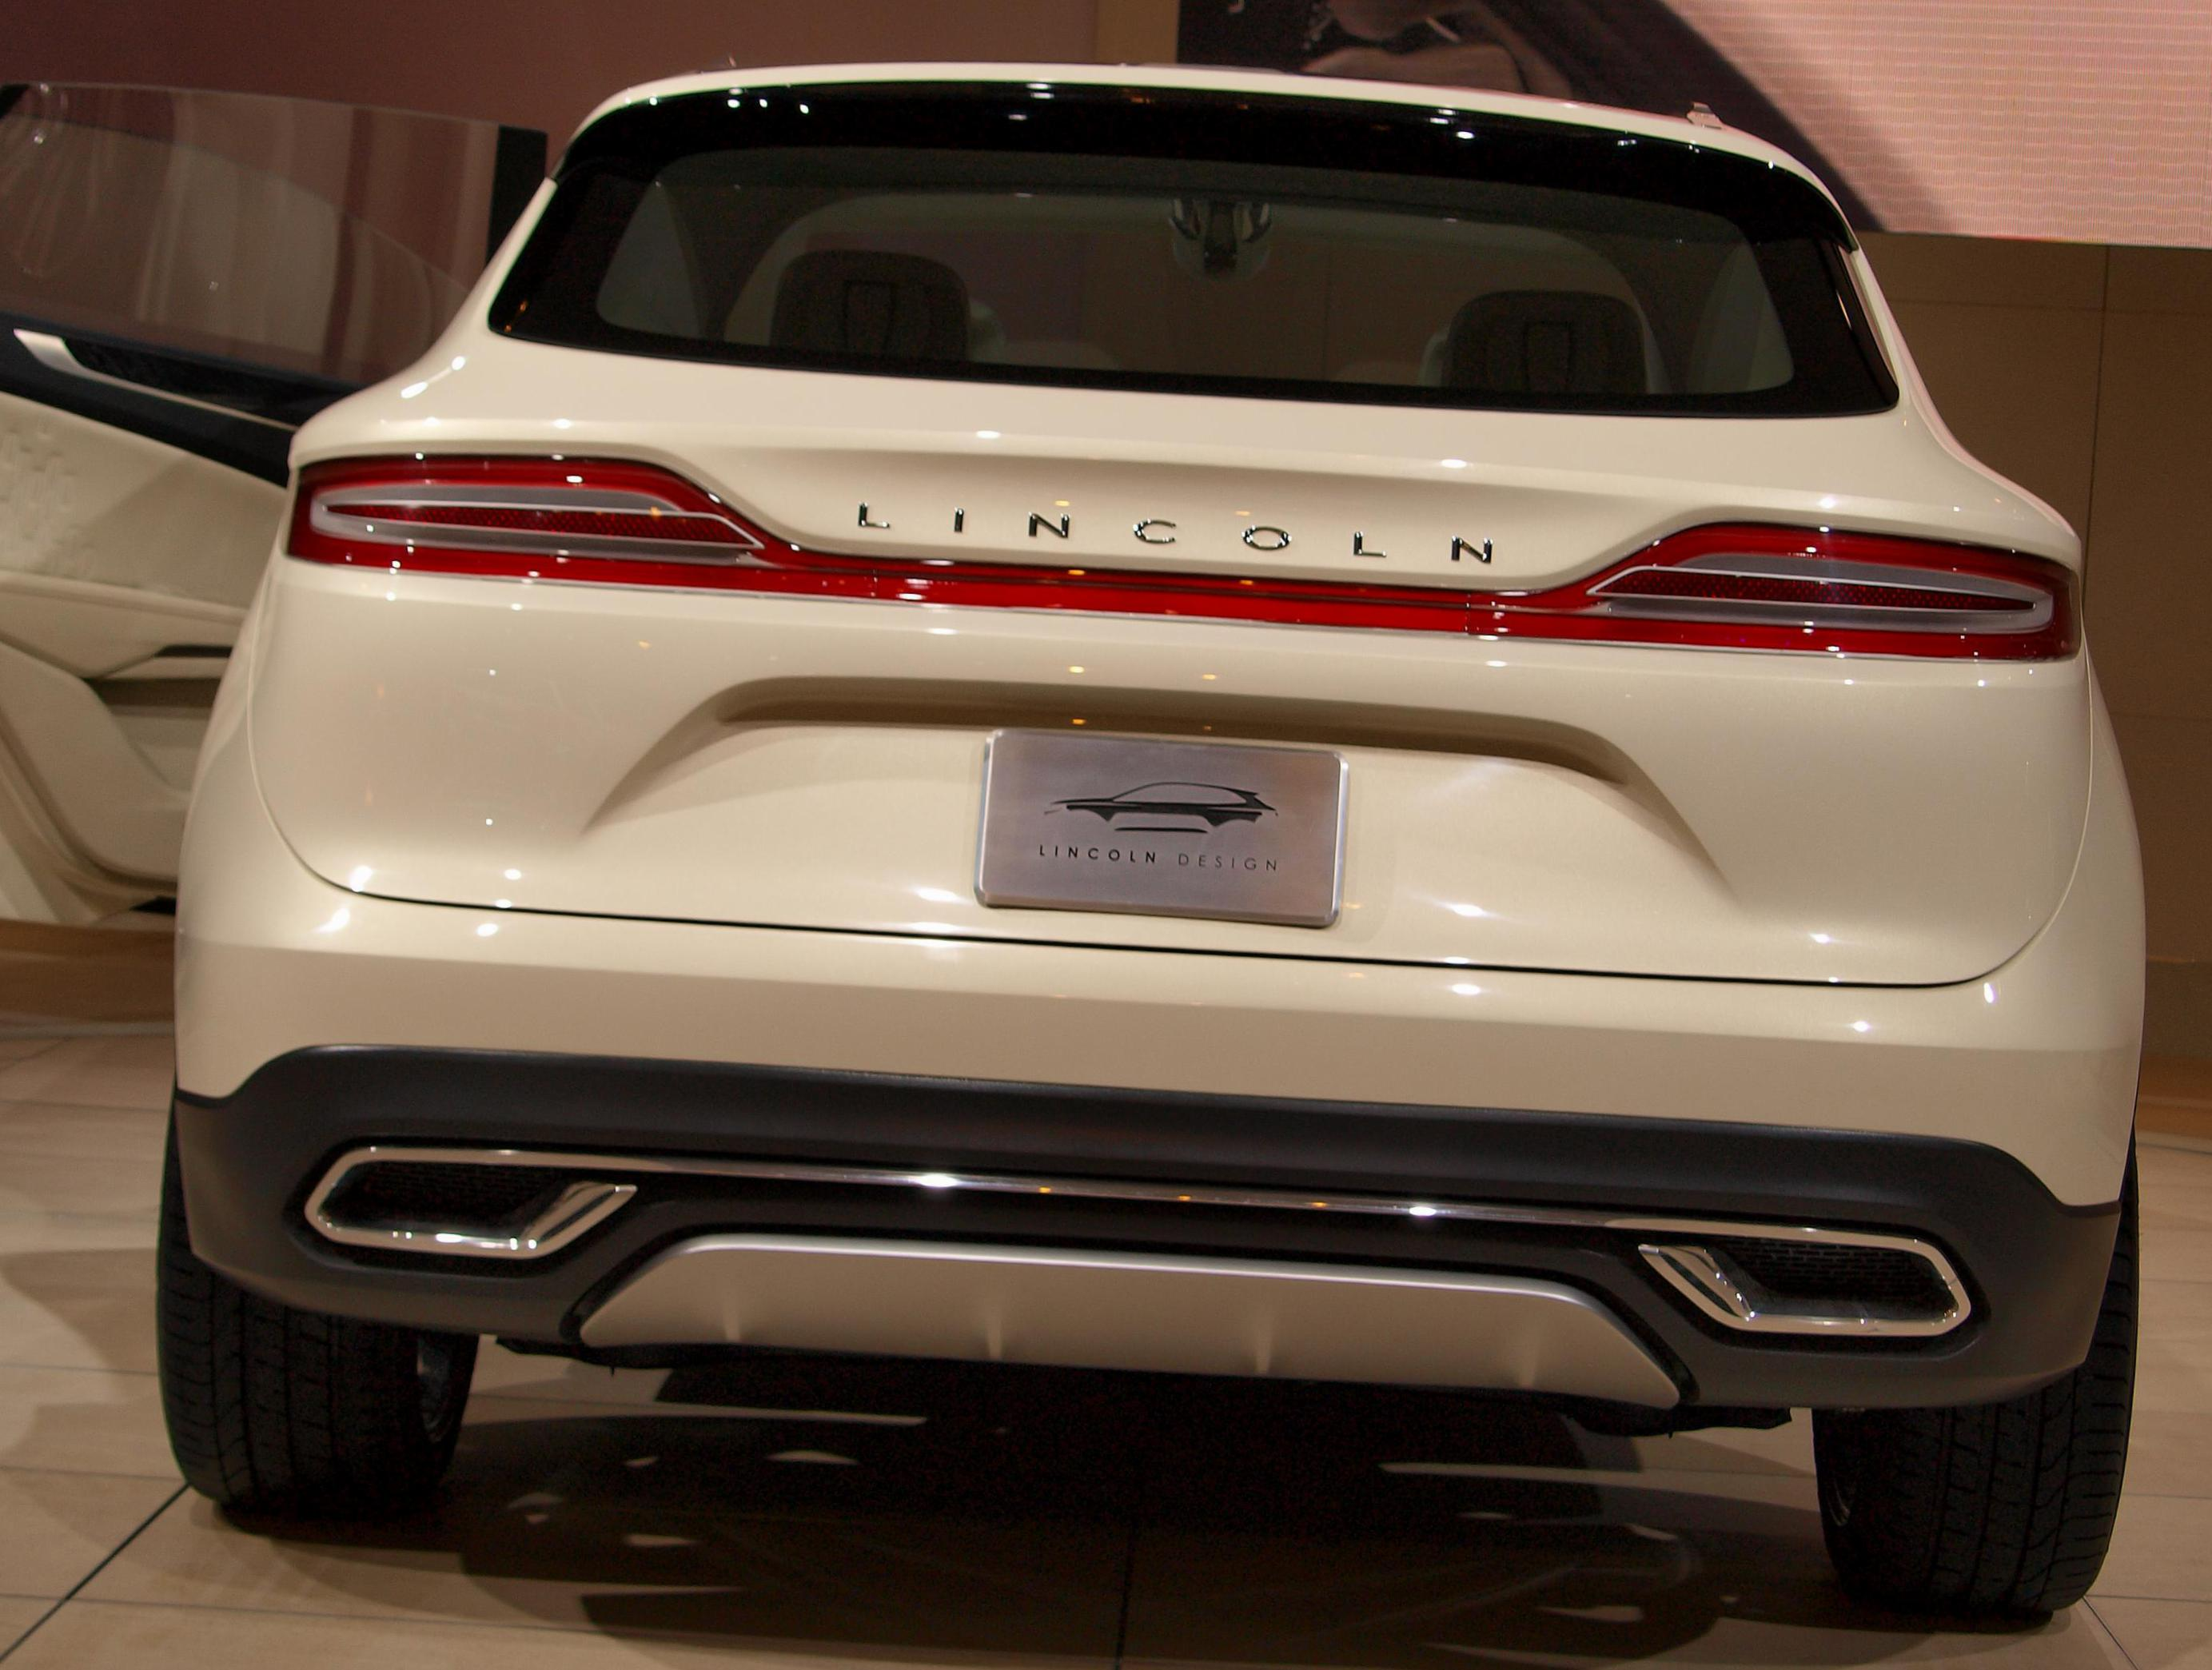 MKC Lincoln new suv